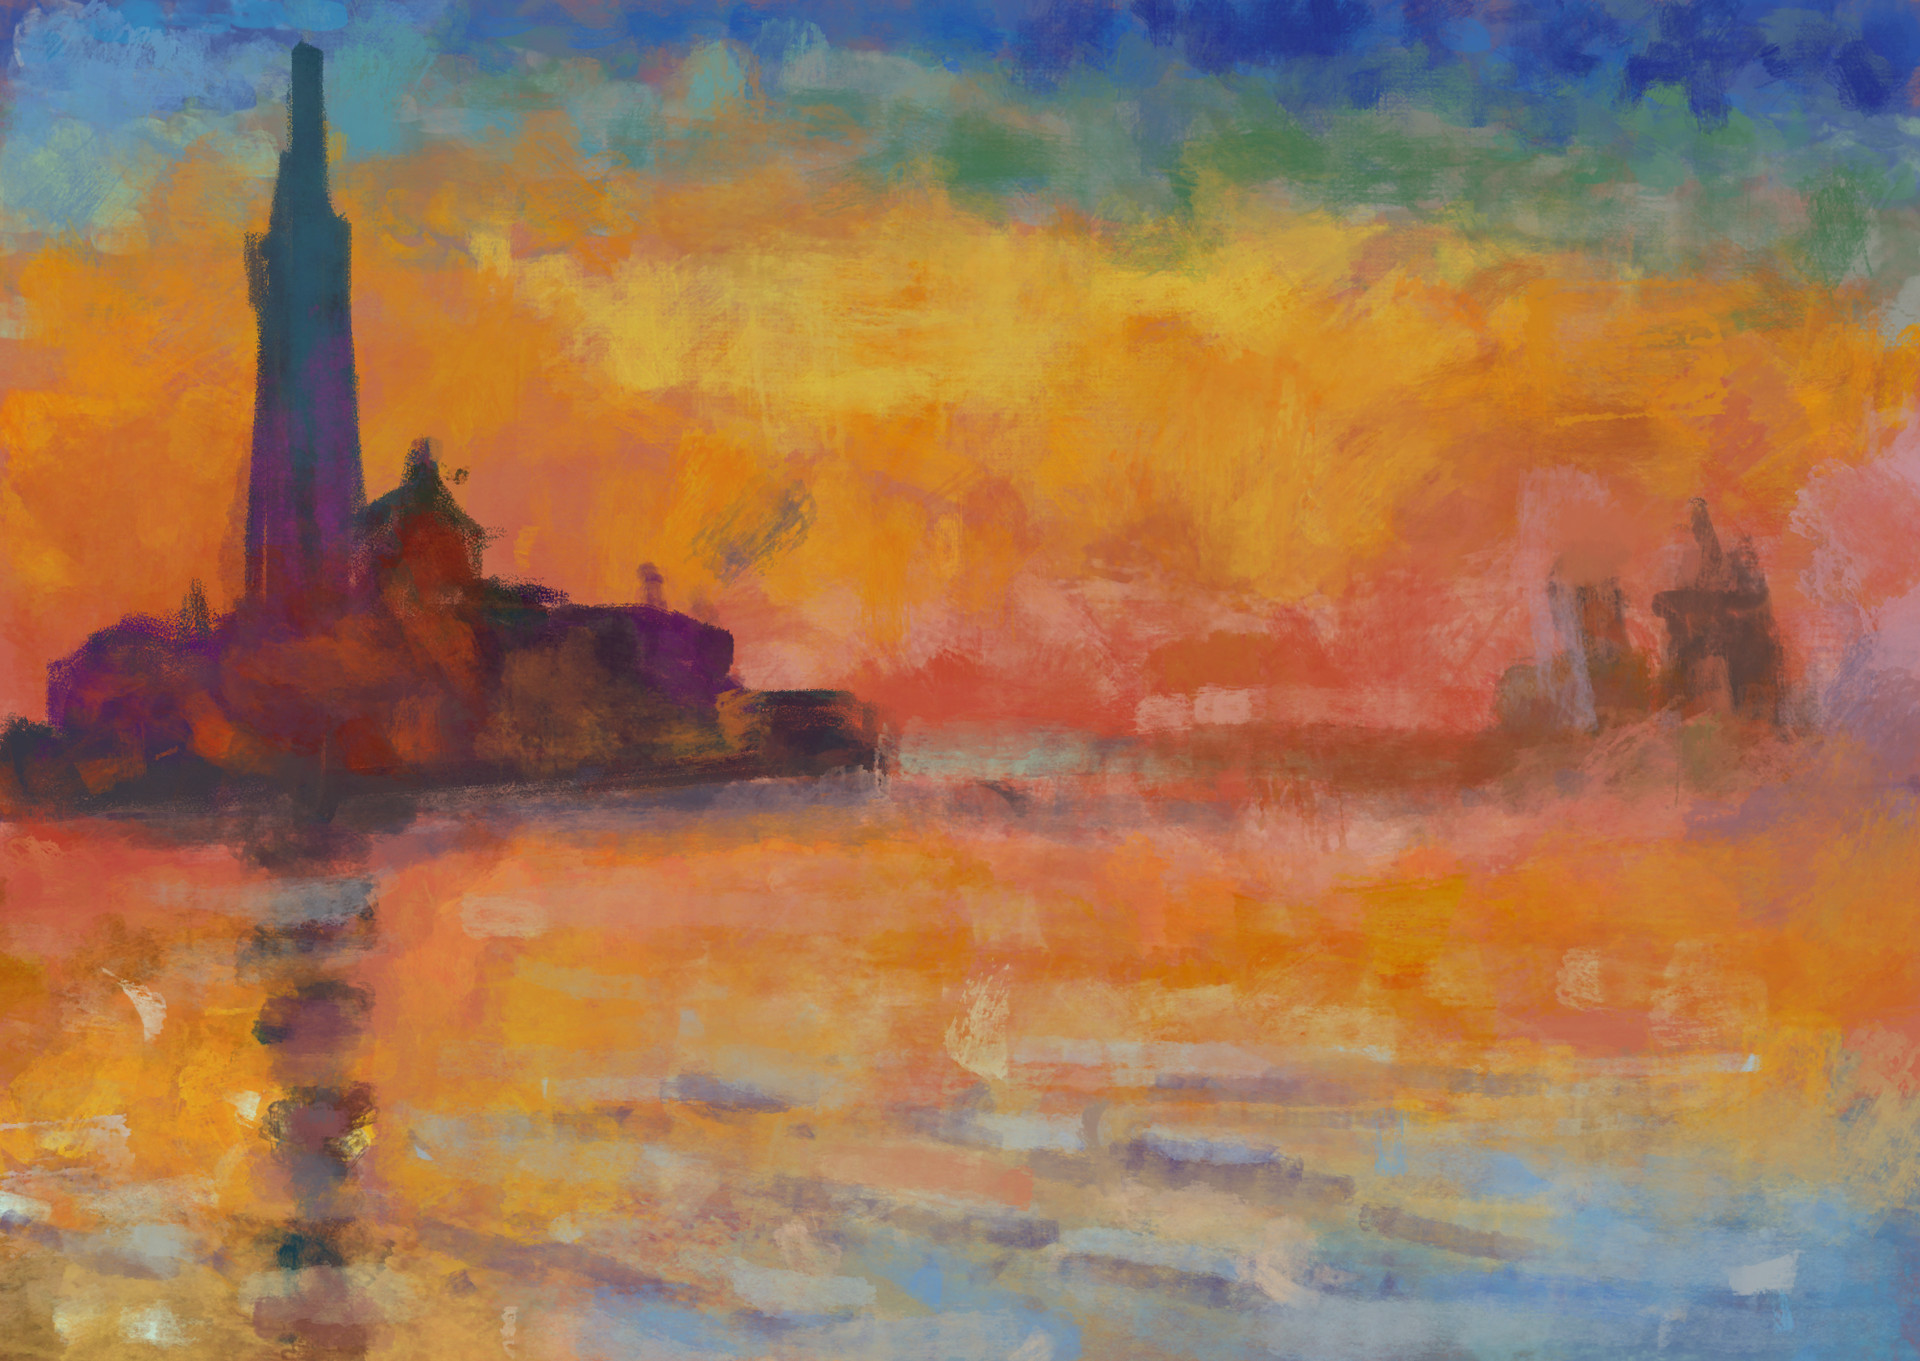 Kate miterko kate miterko day15 monet